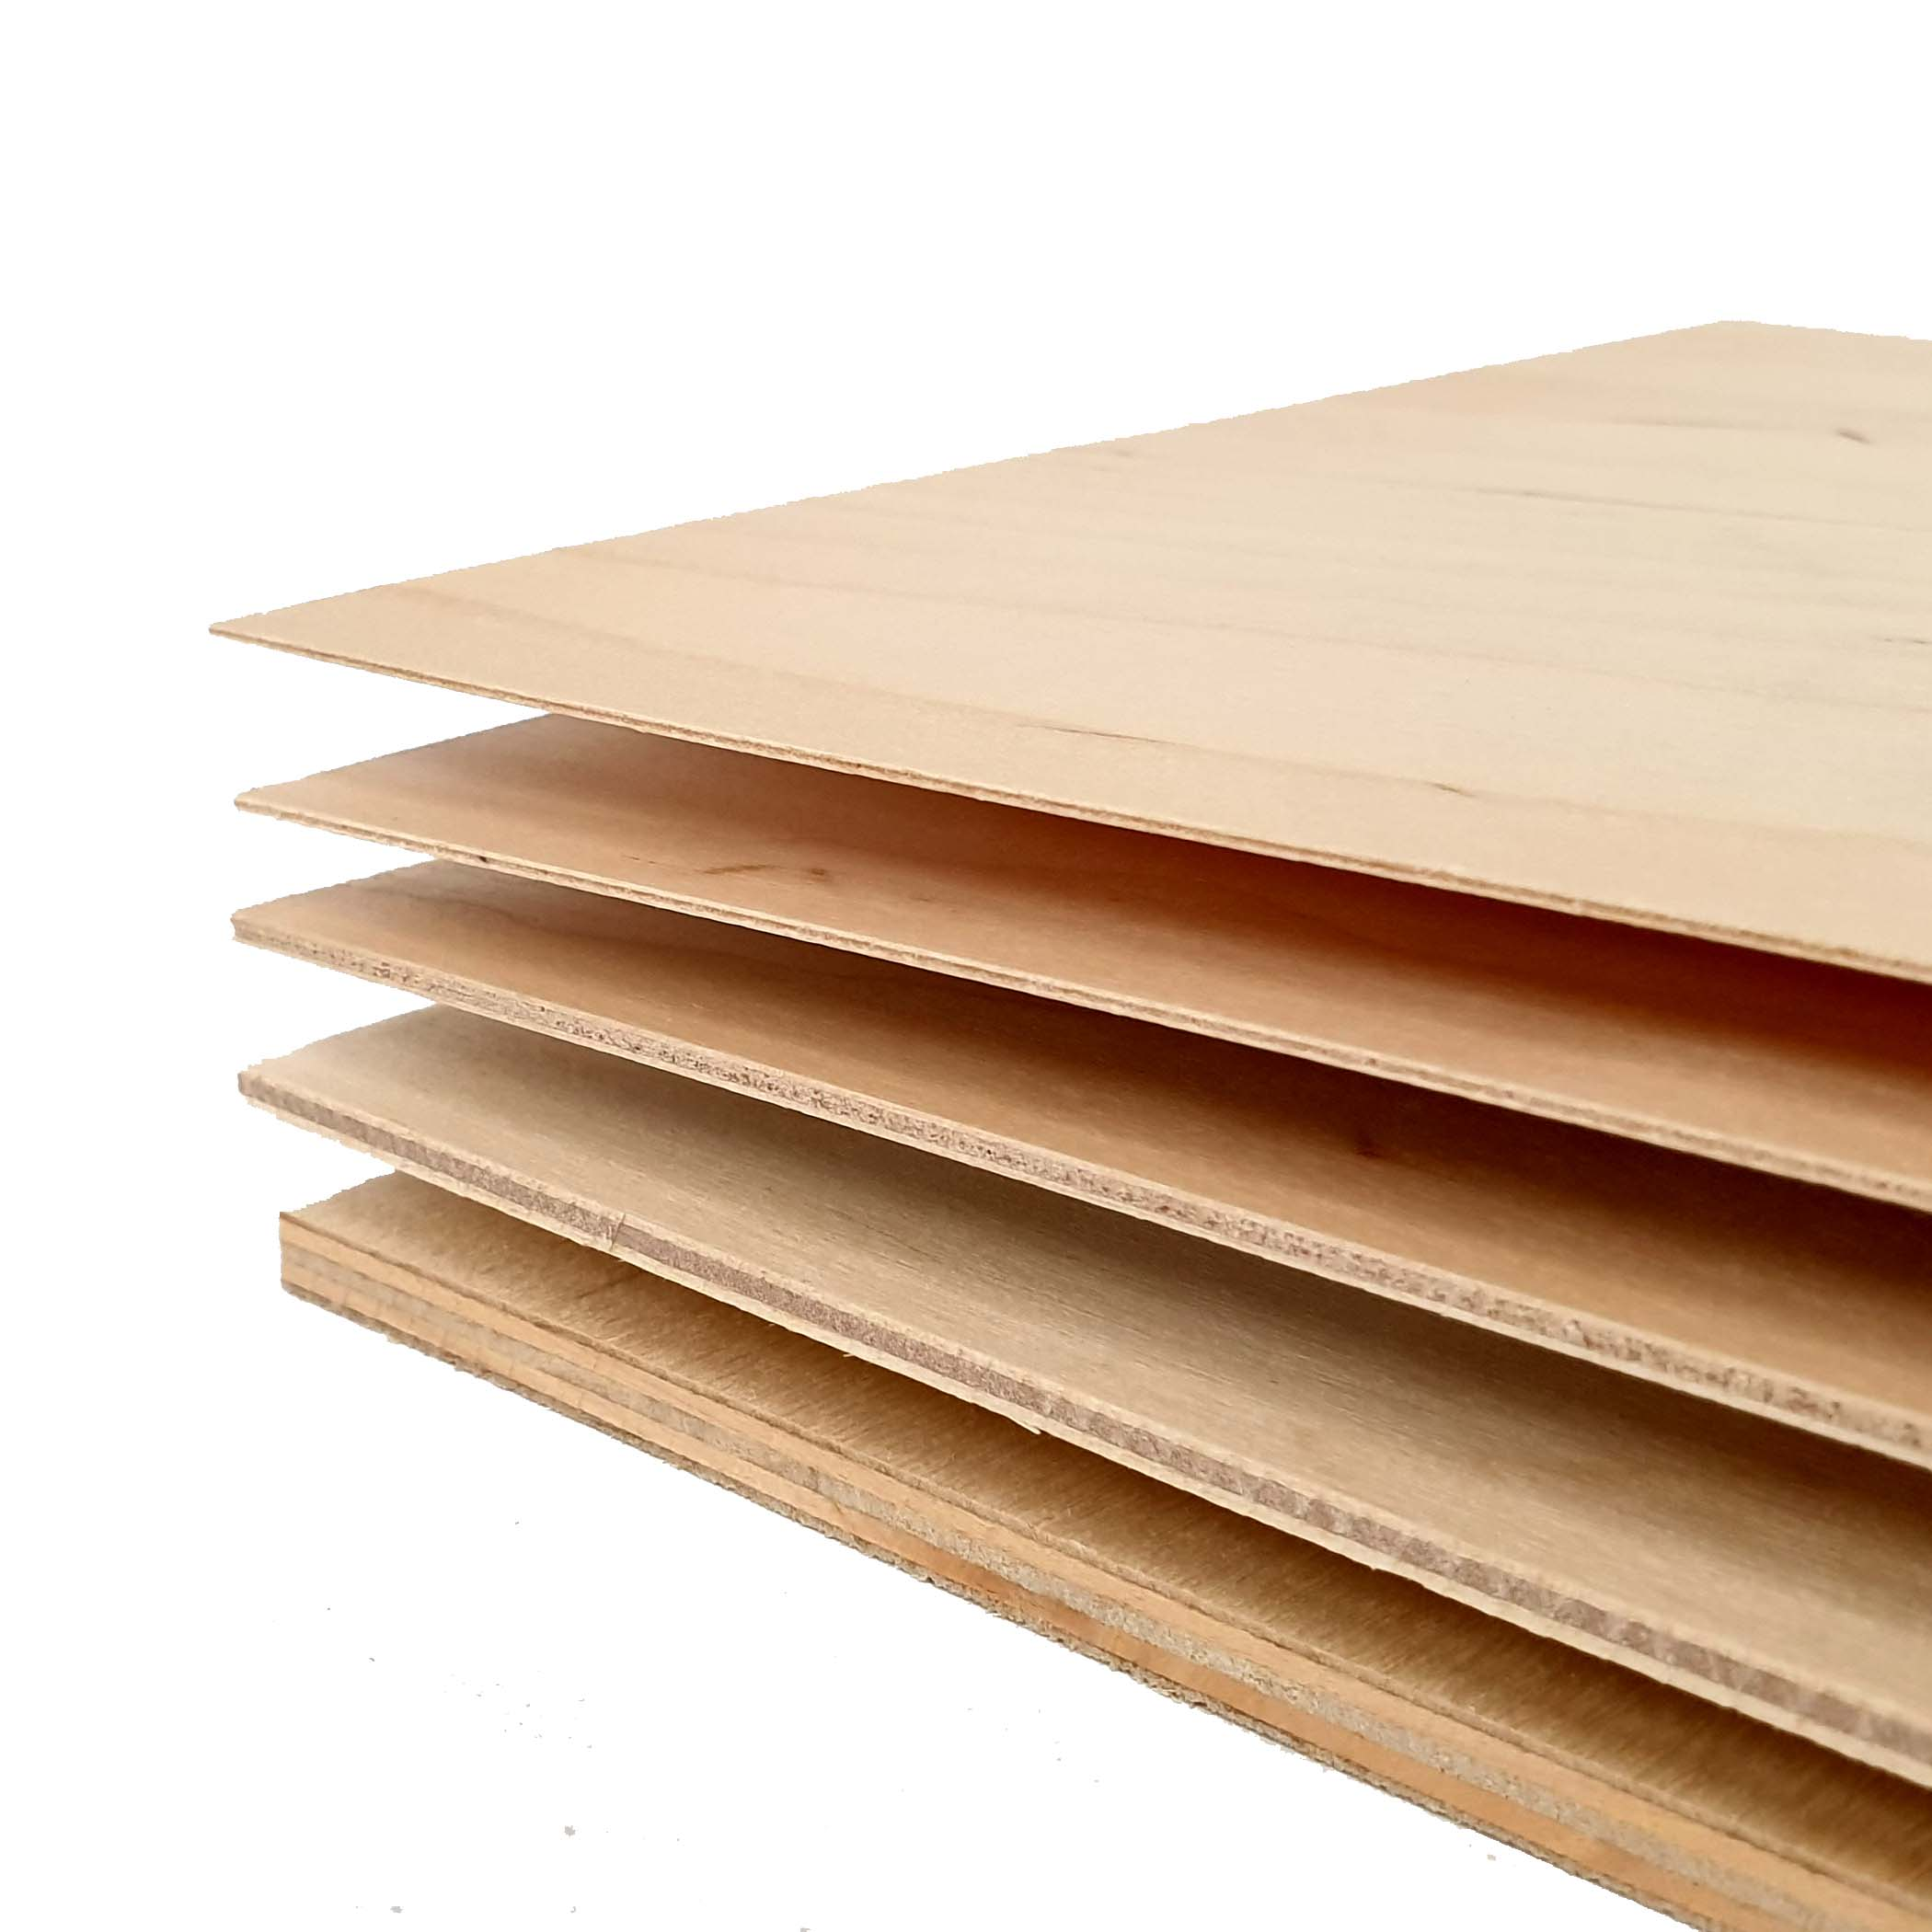 50 x A4 Birch Plywood Sheets Laser Safe Crafts Models Pyrography 4mm